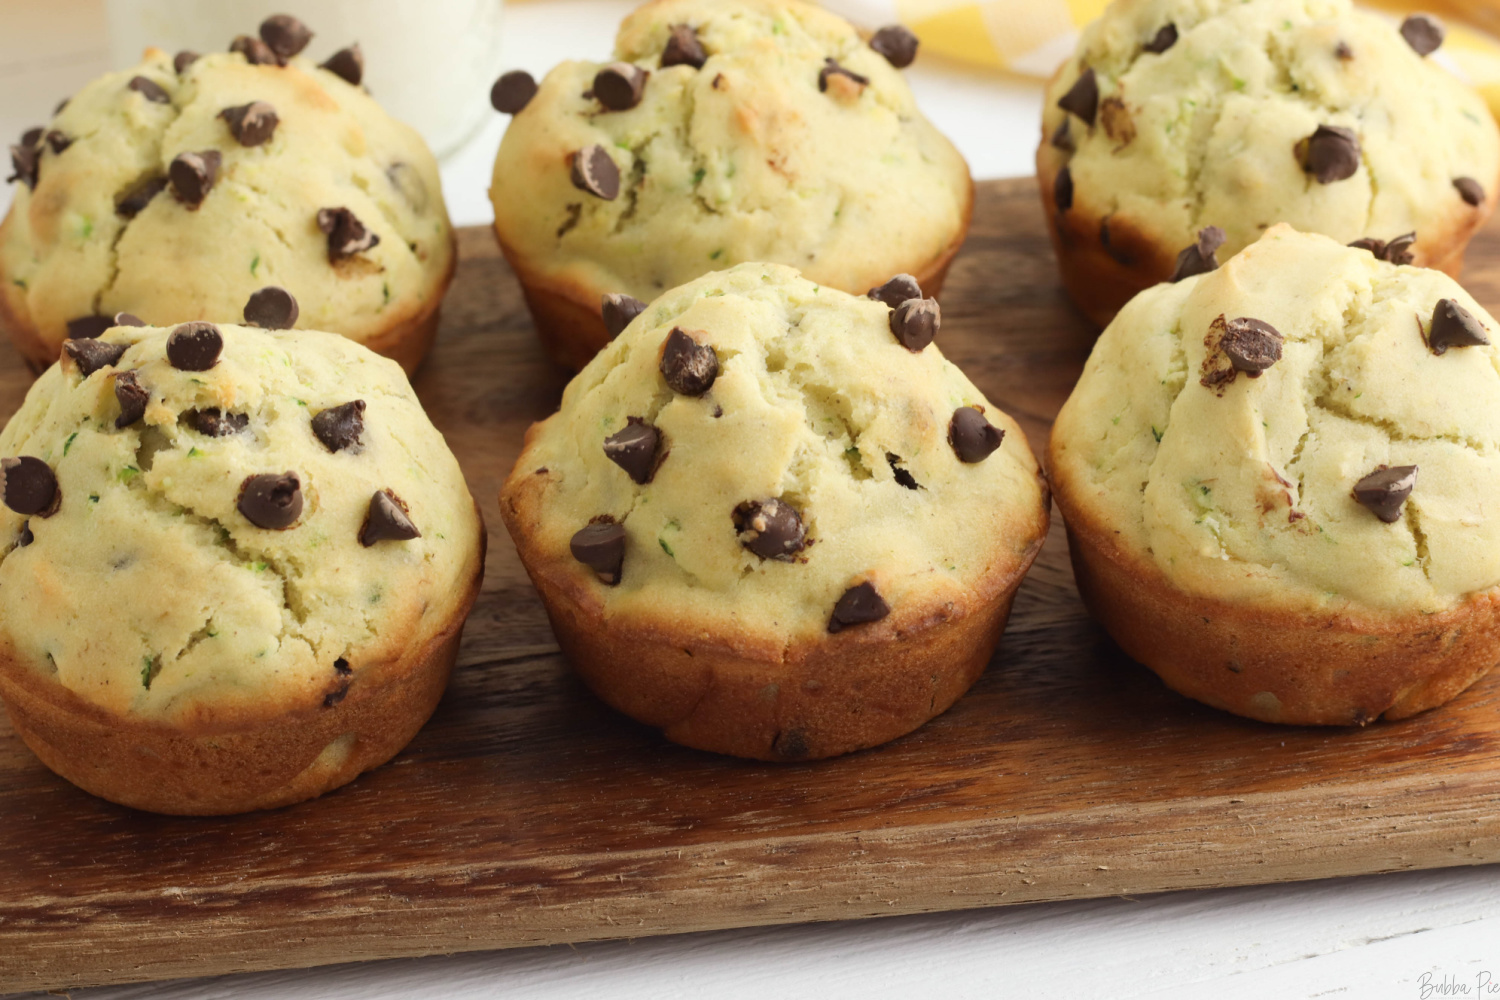 Banana Zucchini Muffins in a serving tray.